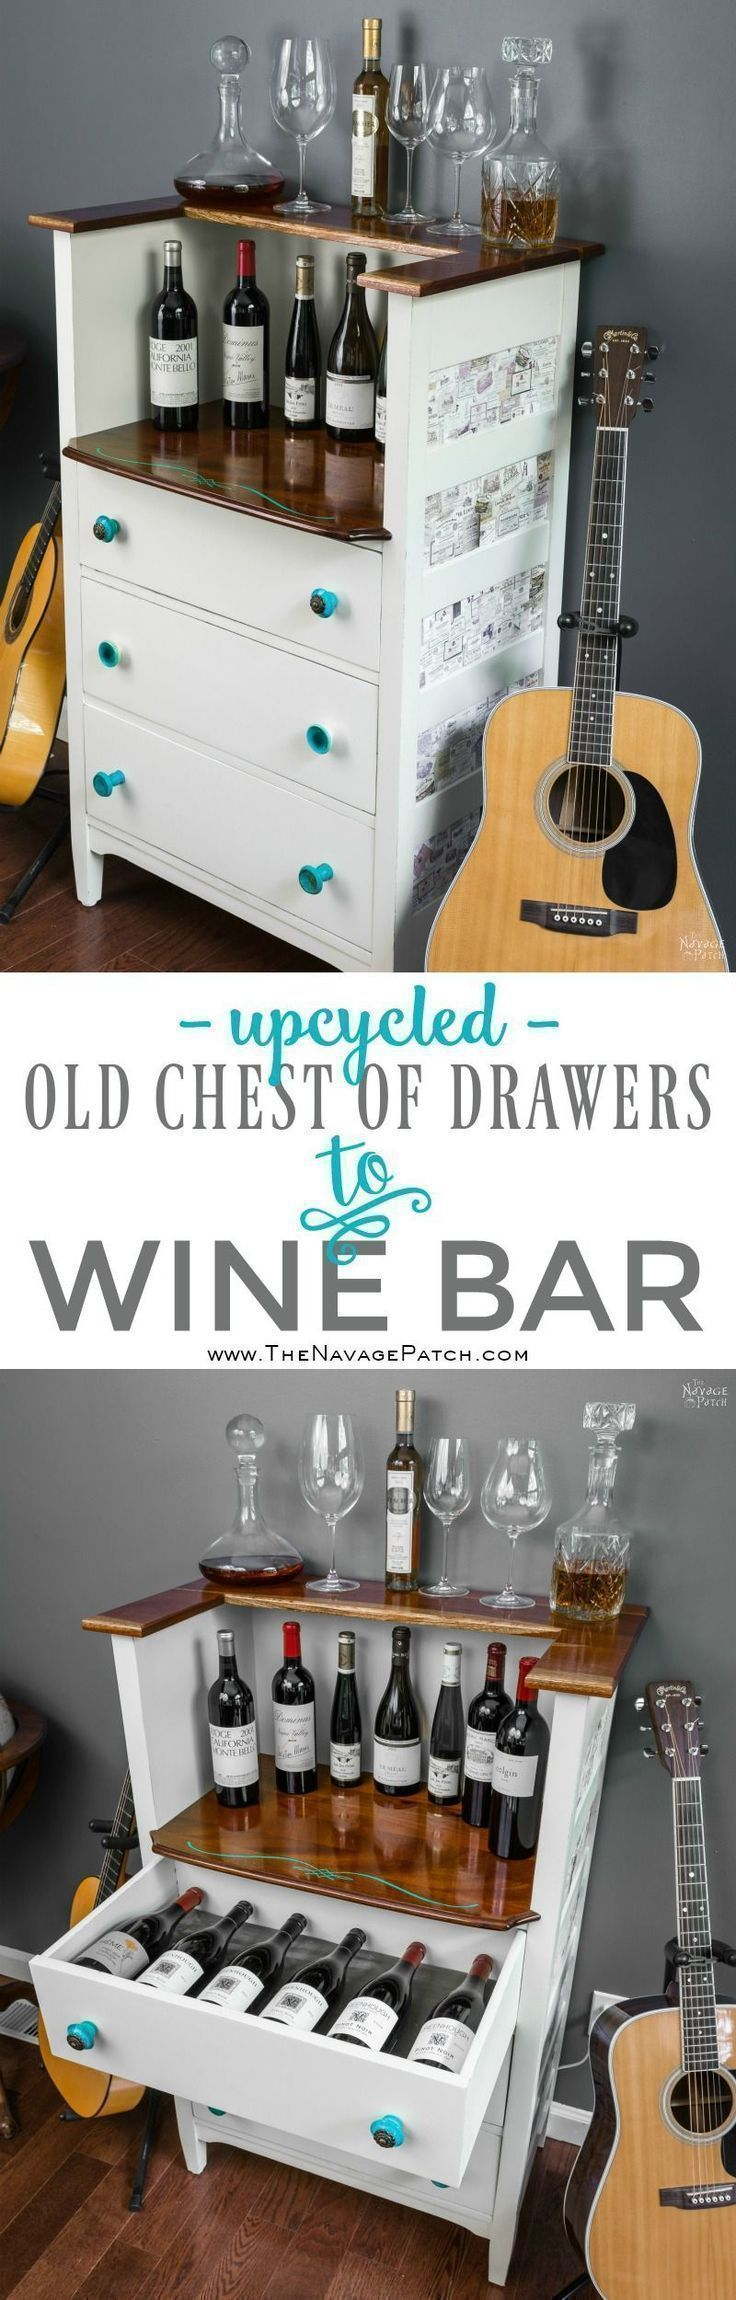 Upcycled: Old Chest of Drawers to Wine Bar | DIY furniture makeover| Upcycled furniture | DIY Wine Bar | From dresser to wine bar | Homemade chalk paint | Painted and upholstered furniture | Upholstery | Farmhouse style furniture | Annie Sloan Old White color | Fabric onlay | Painted wood furniture |Transformed furniture | Before & After | TheNavagePatch.com #chalkpaintedfurniture #oldfarmhouse #furniturecolors